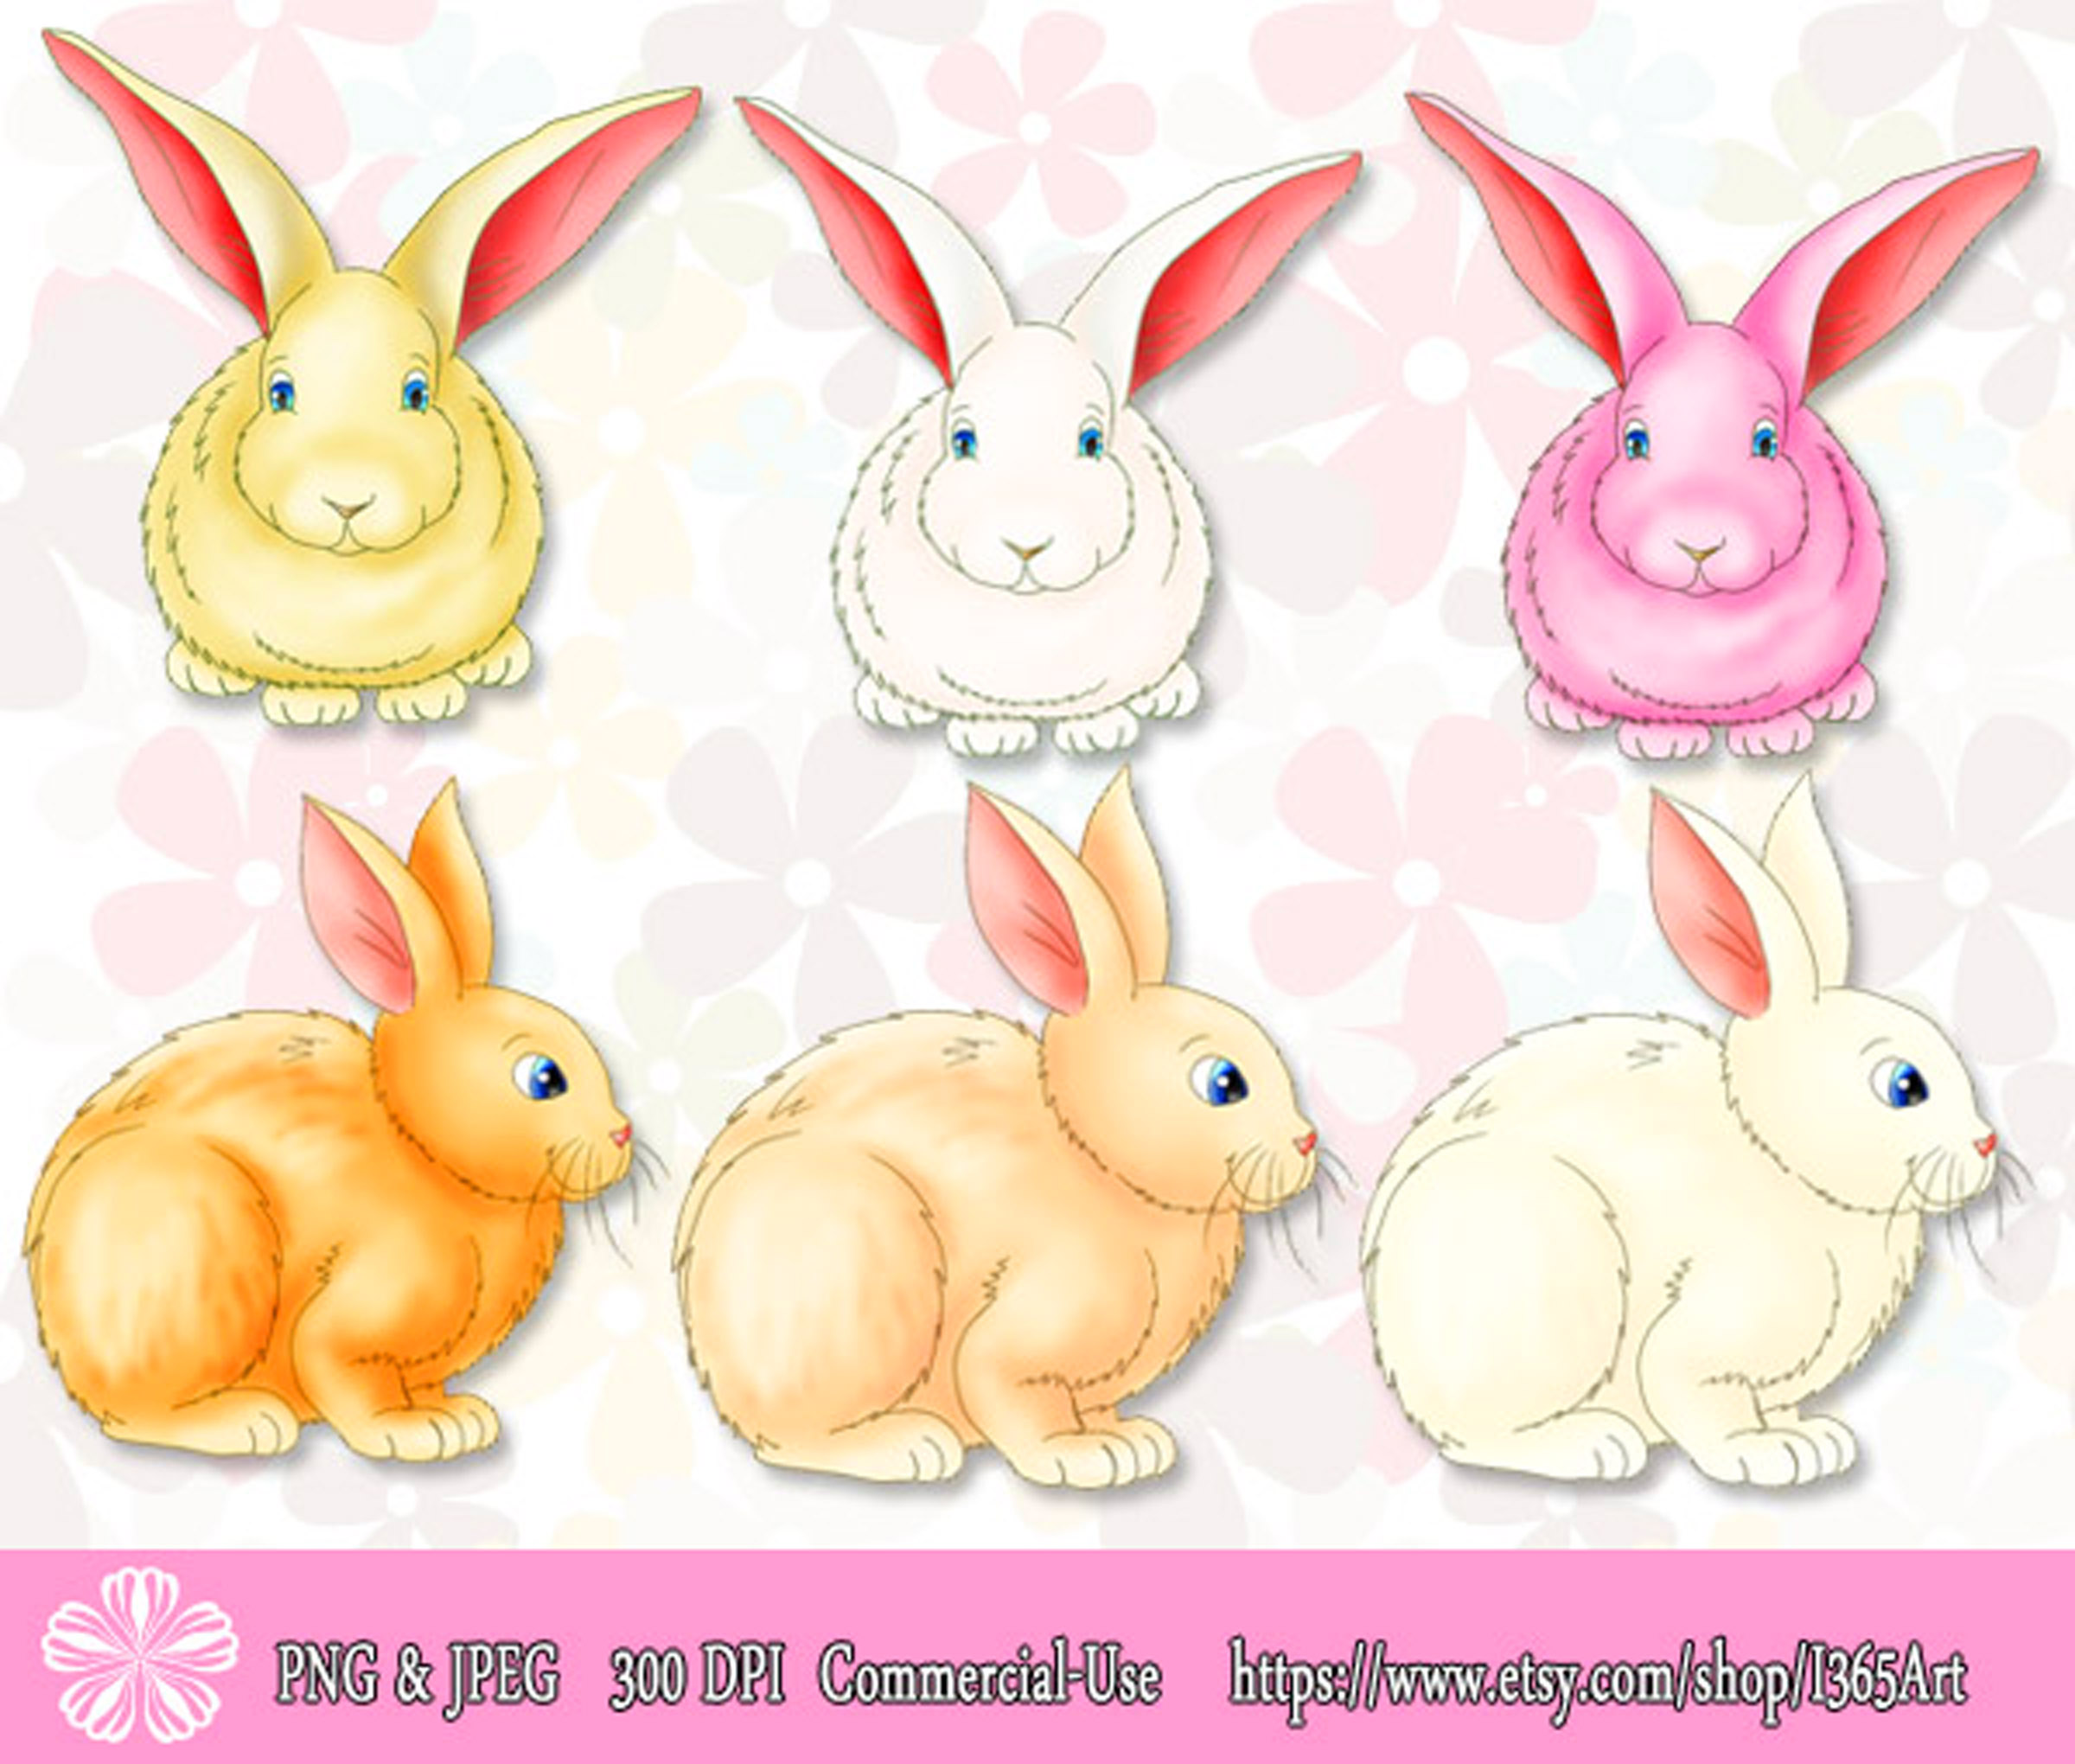 Cute Colorful Easter Bunny Rabbit Clipart Graphics – For Sale at the I365Art Store Now